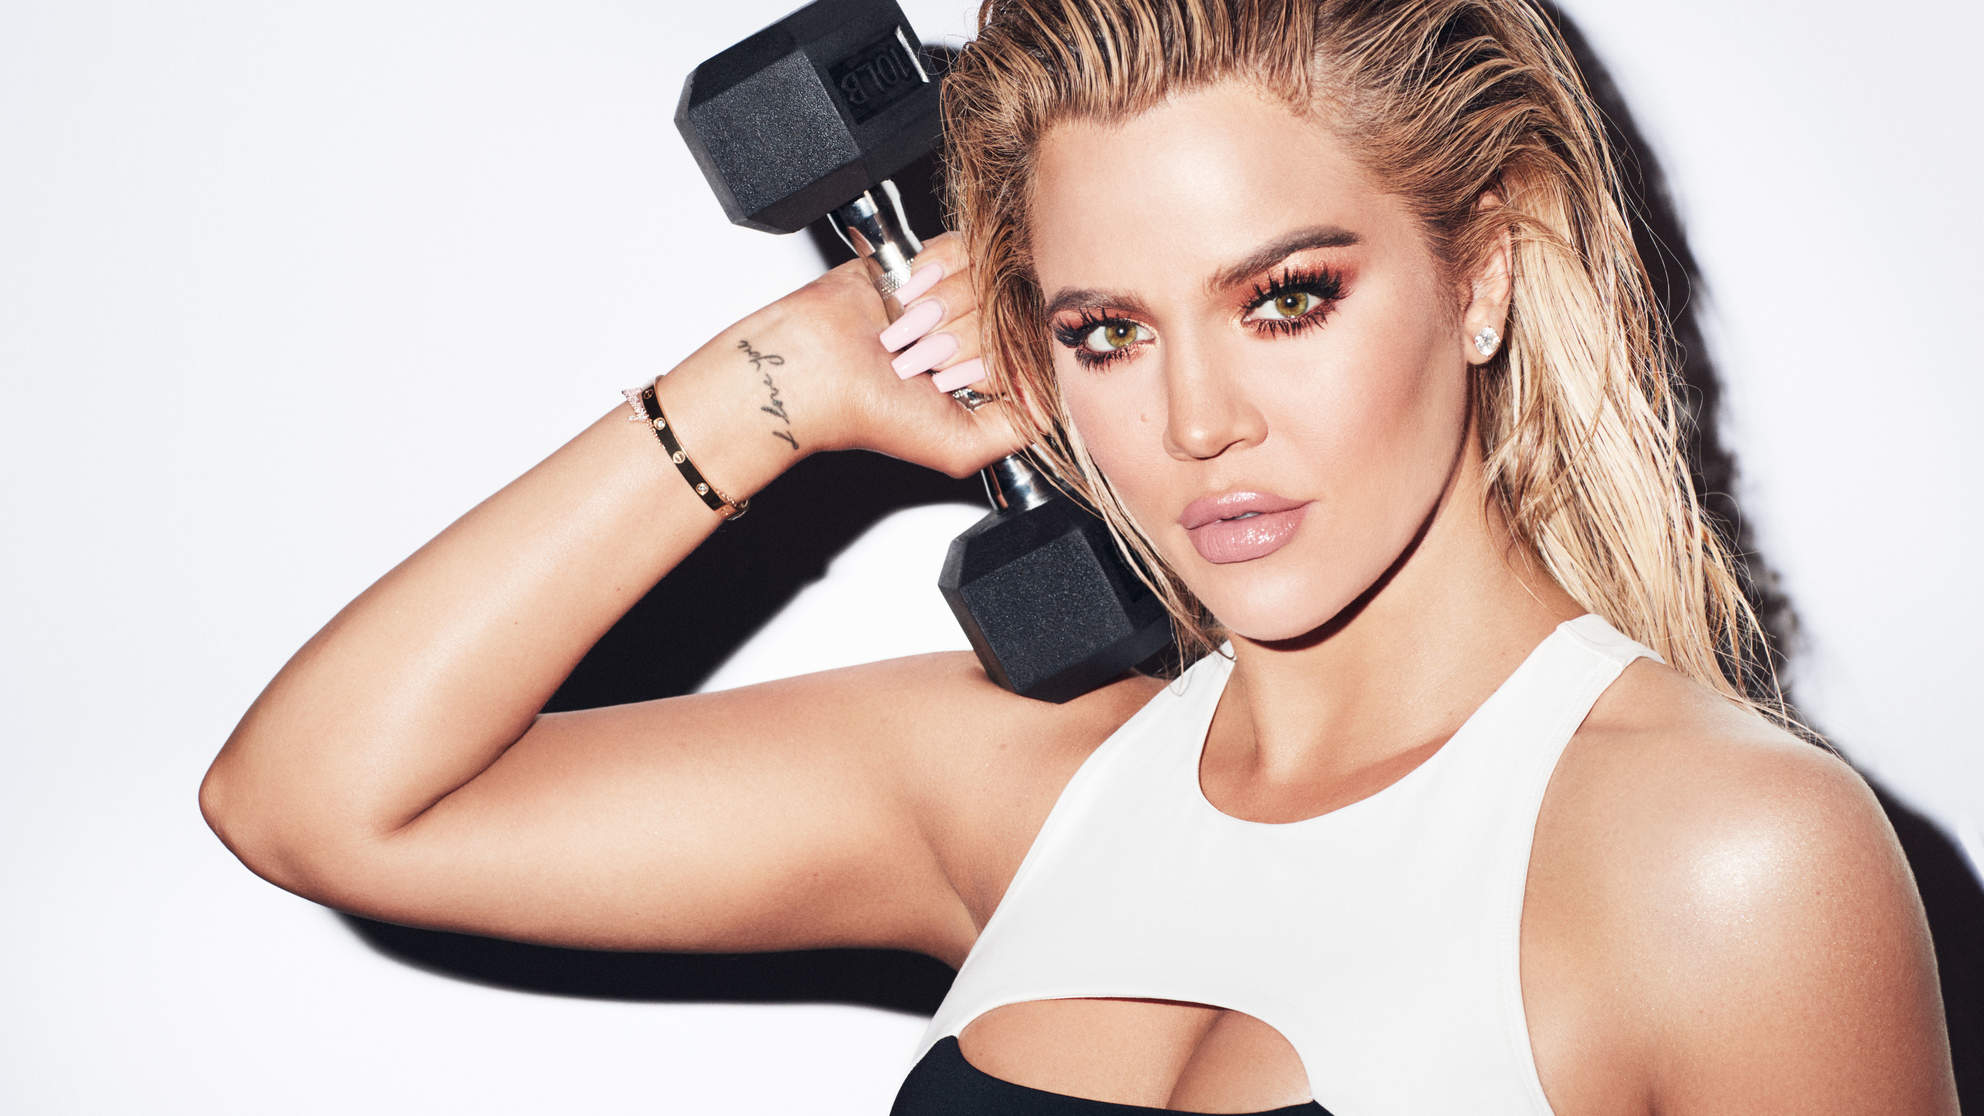 I Tried Khloe Kardashian's New Activewear Line, and Here's What I Thought